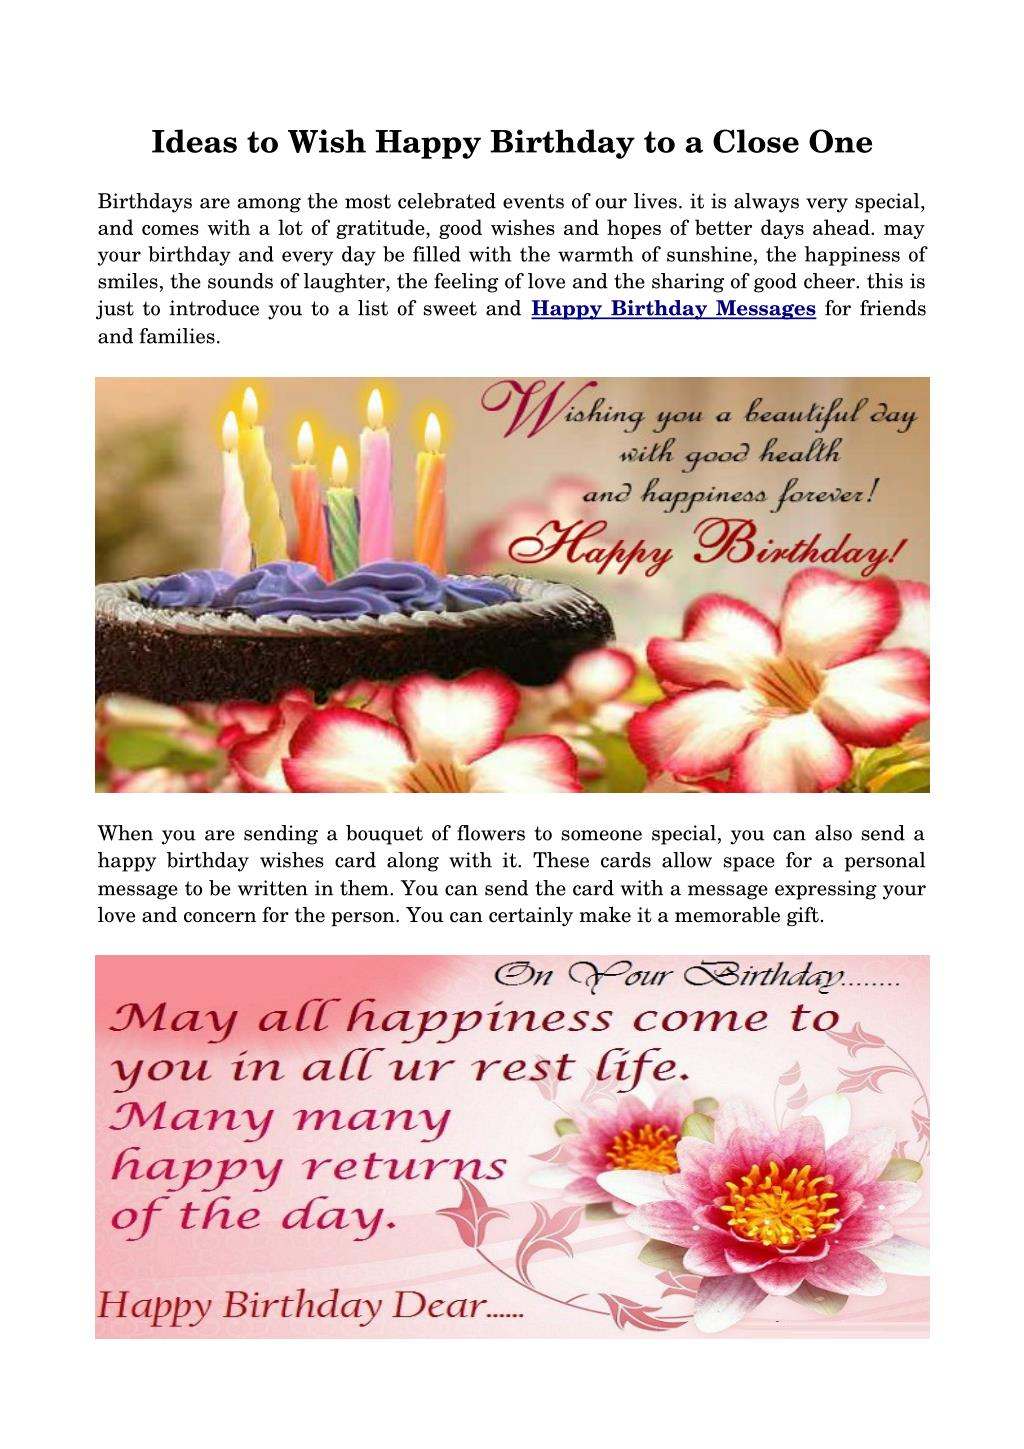 Ppt ideas to wish happy birthday to a close one powerpoint ppt ideas to wish happy birthday to a close one powerpoint presentation id7307205 izmirmasajfo